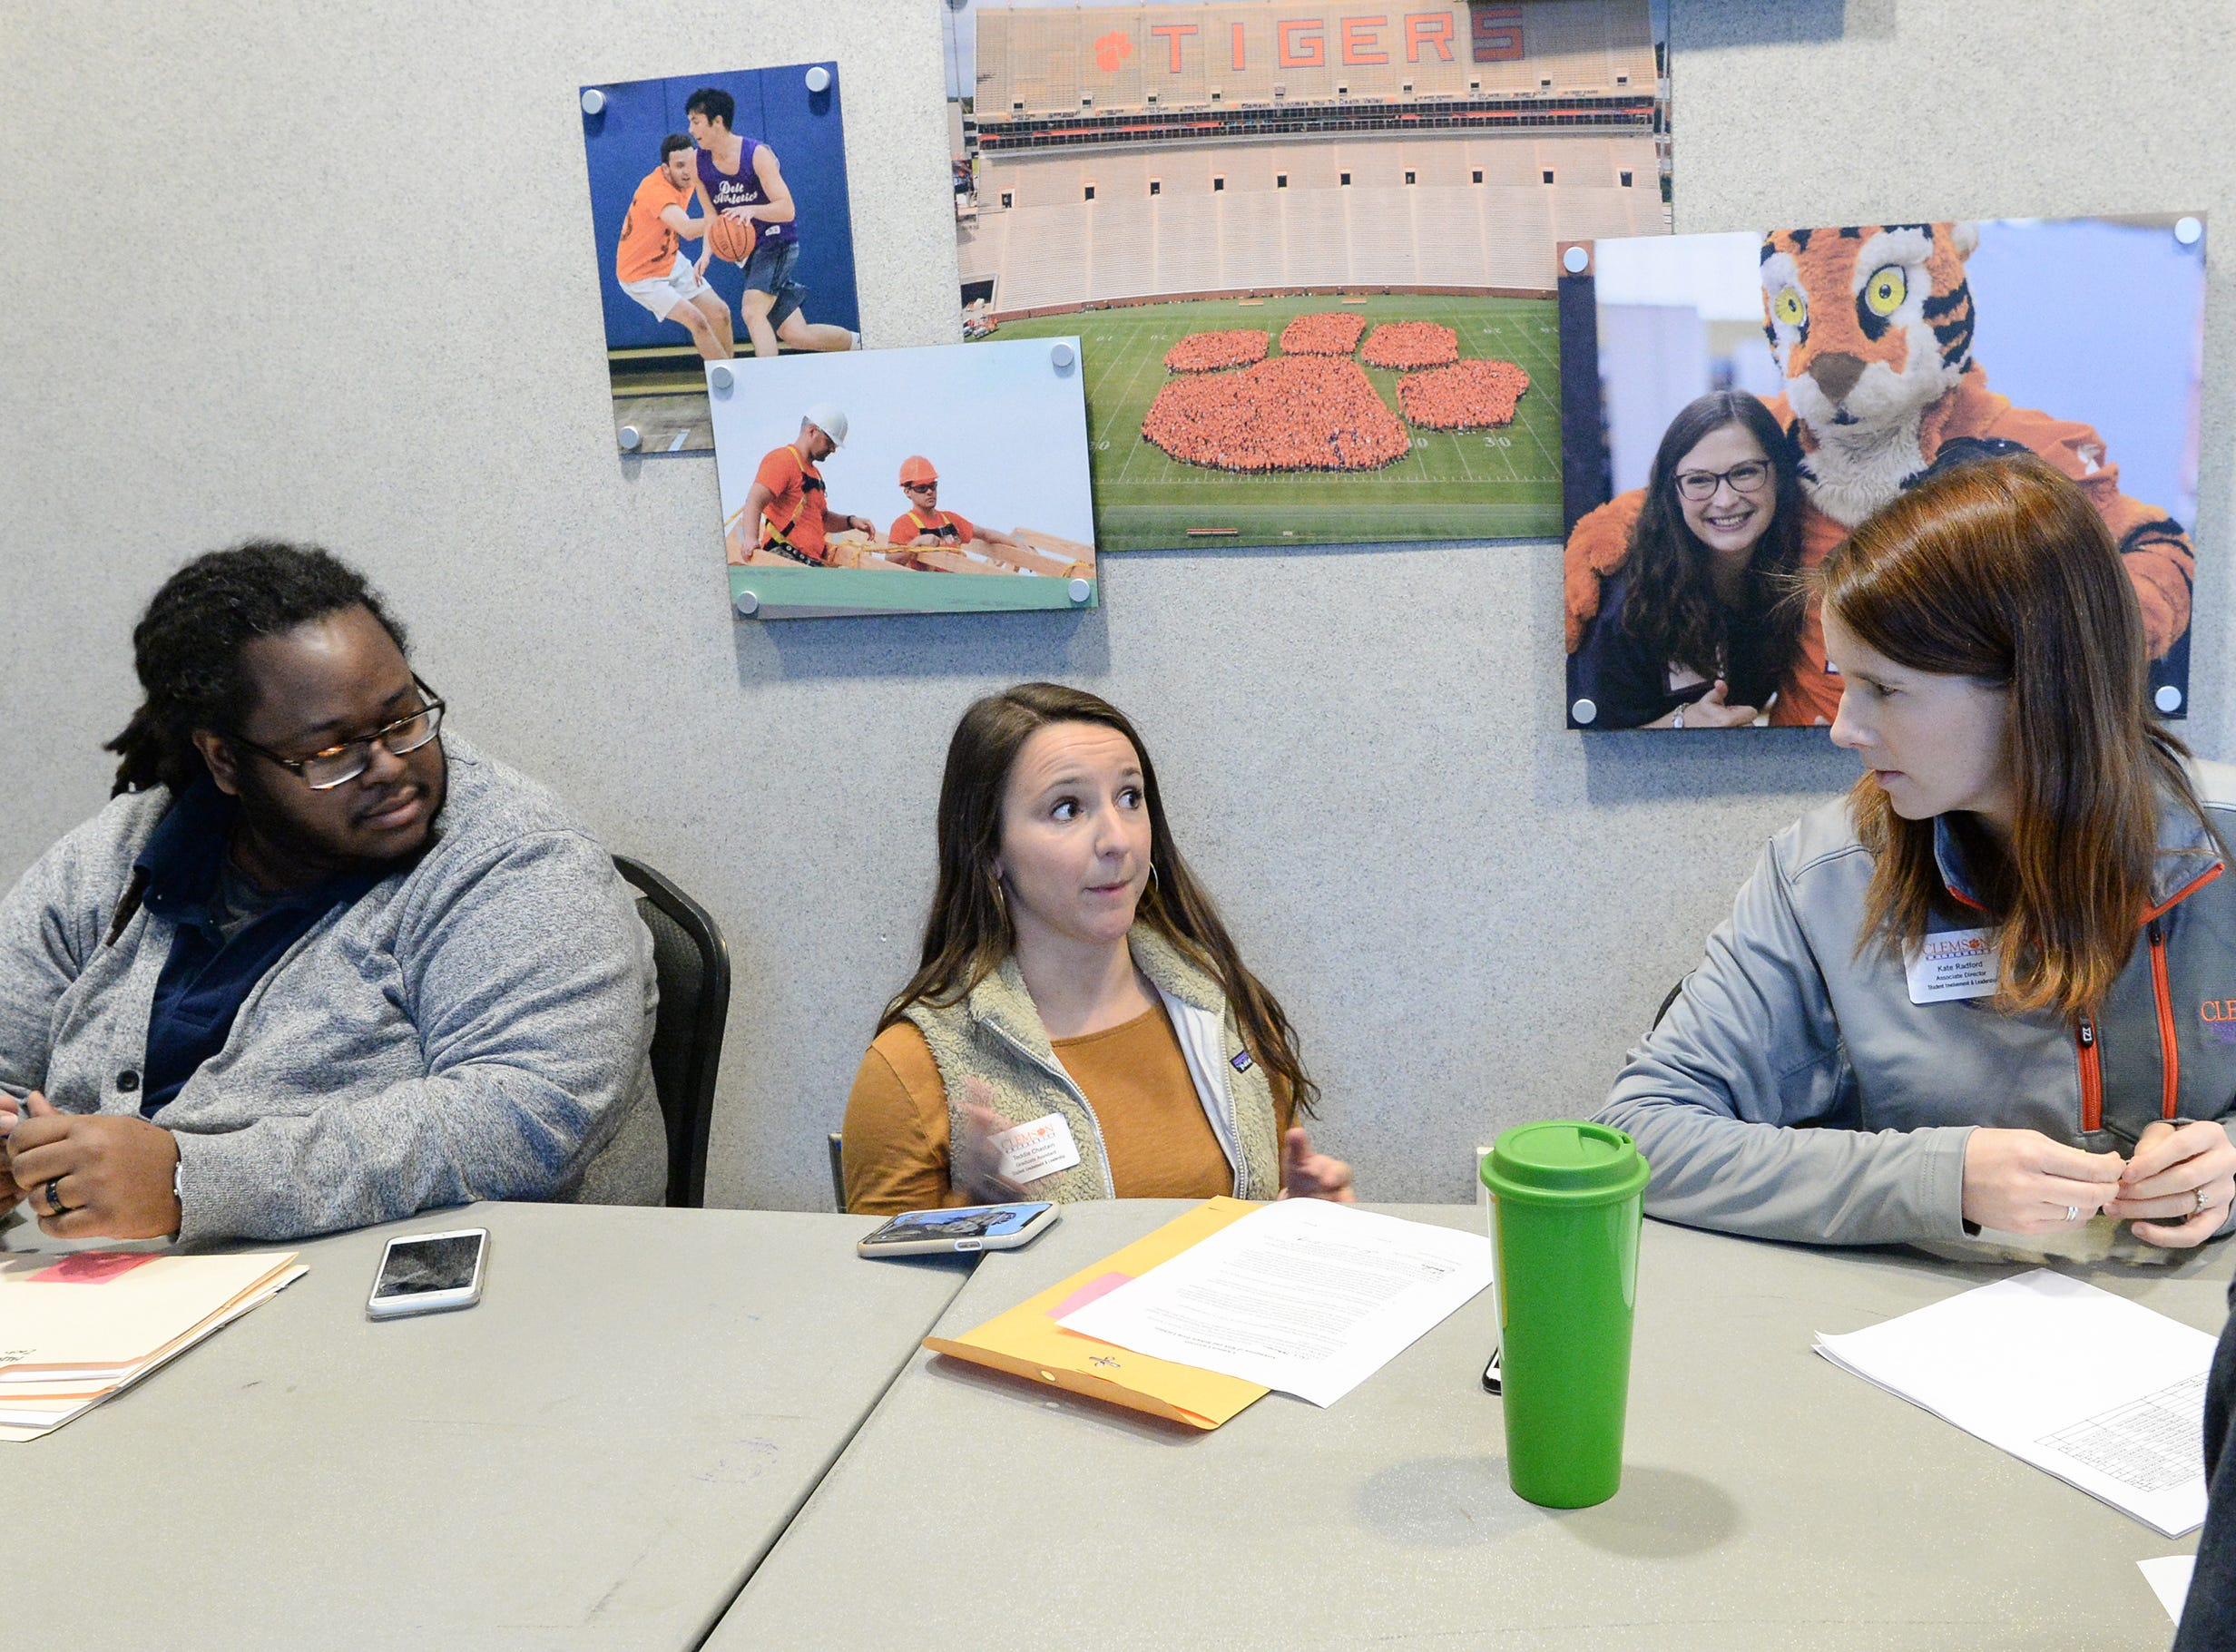 Jerad Green, left, Teddie Chastain, and Katie Radford help students with assignments at the Hendrix Student Center, during the Clemson University Martin Luther King, Jr. Service Day in Clemson January 21, 2019.